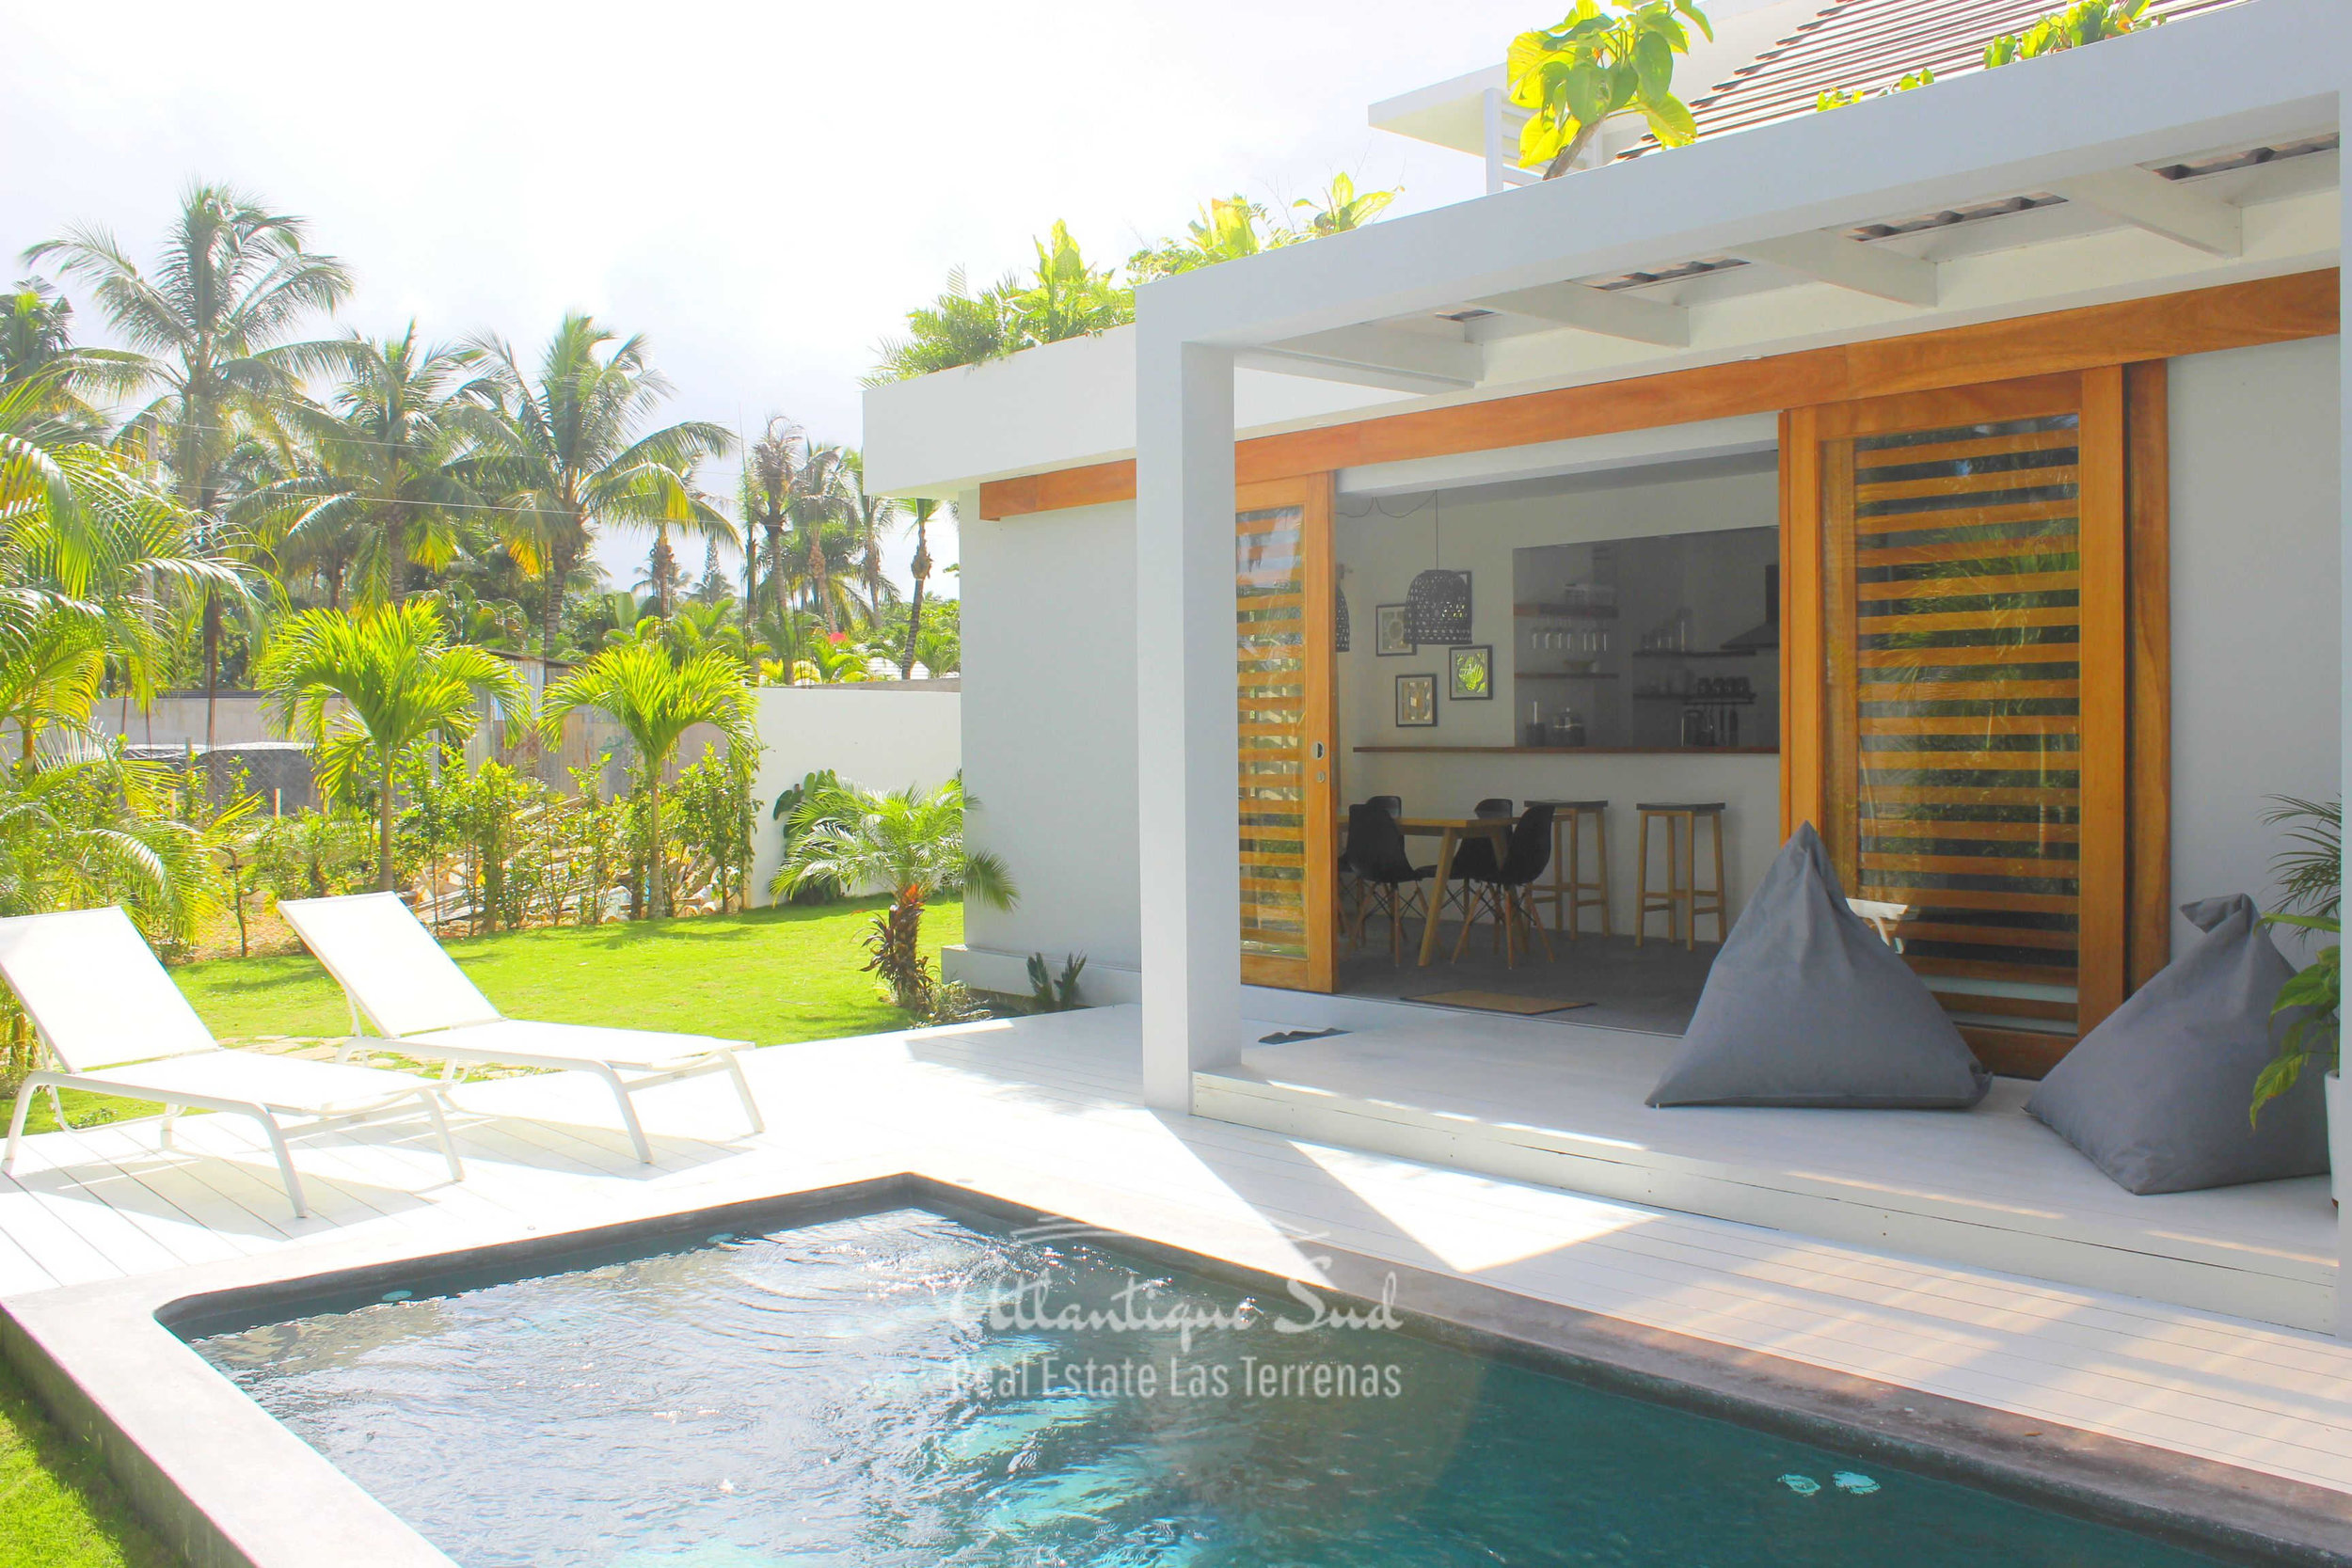 Villa for sale in Las Terrenas - Pran23.jpg